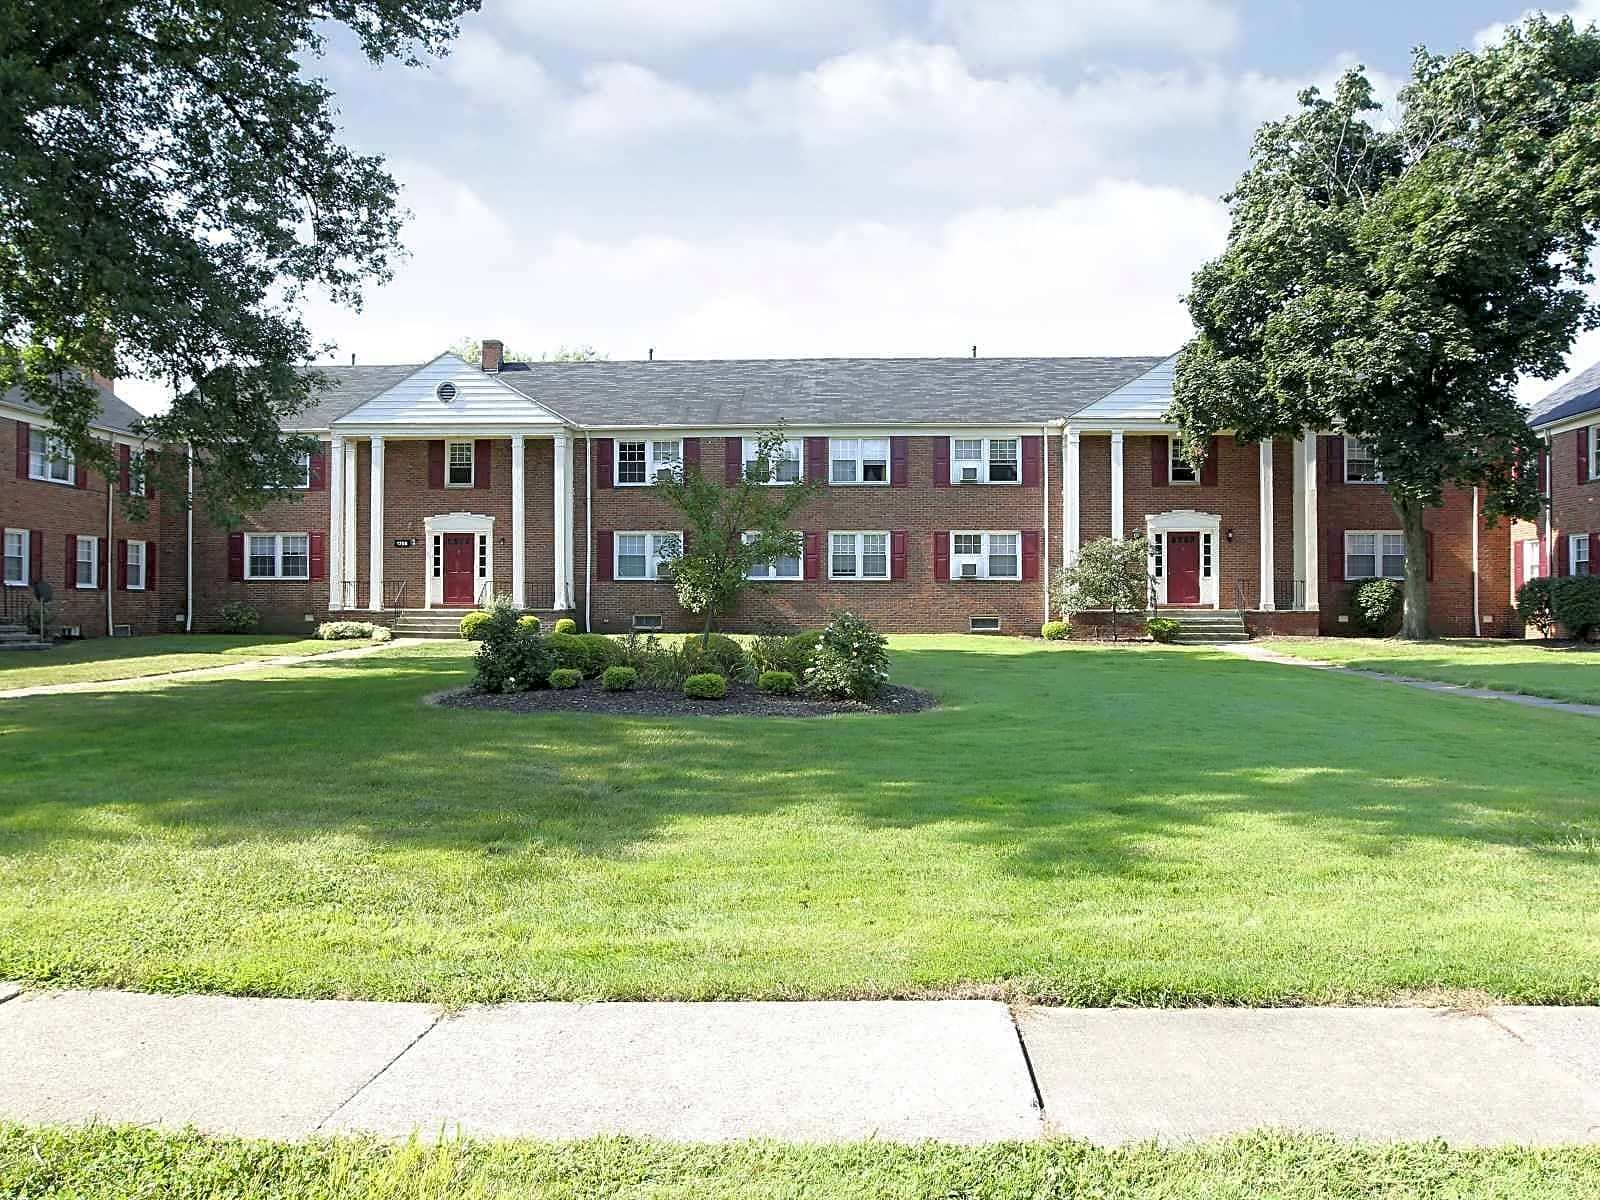 Highland Square Akron >> Woods of Fairlawn Apartments - Akron, OH 44313